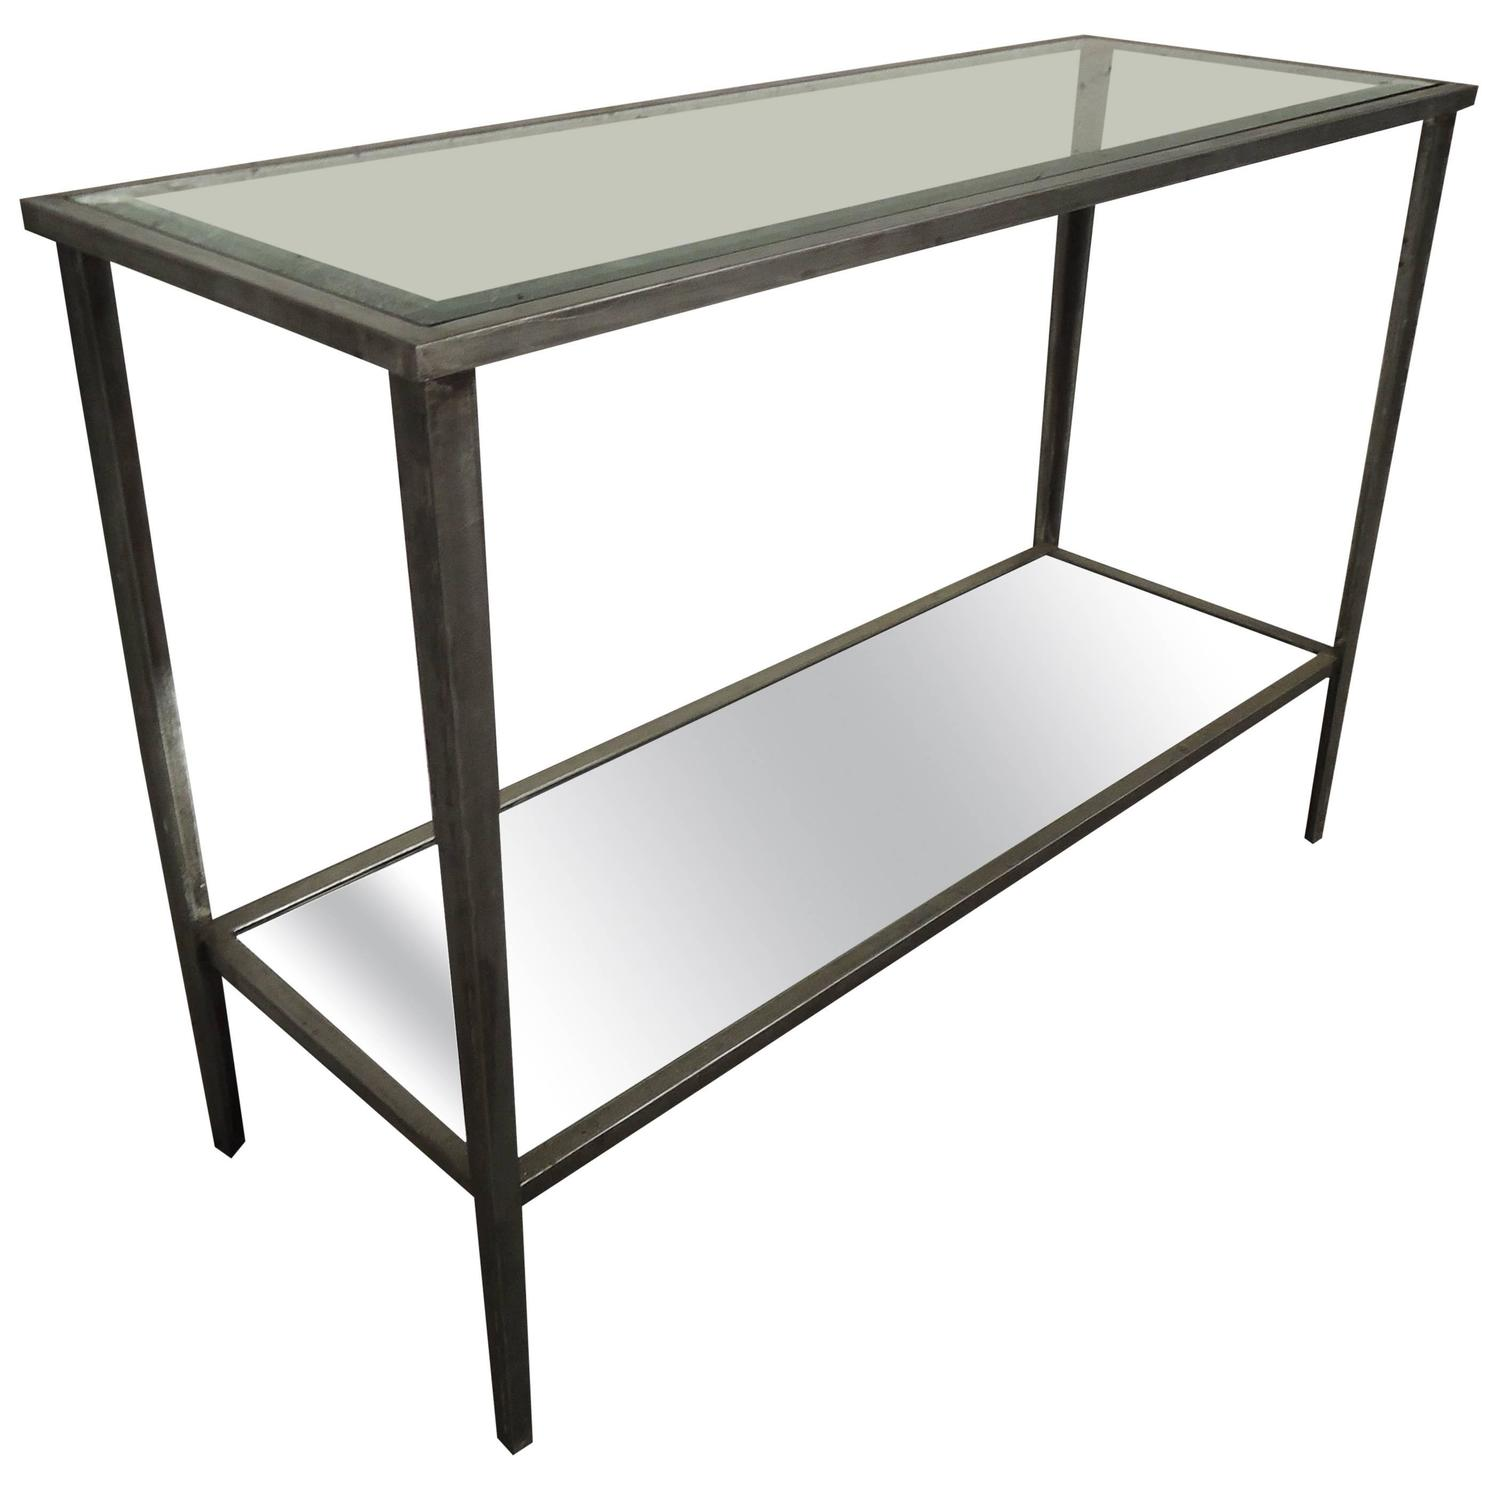 Midcentury Industrial Style Console Table At 1stdibs